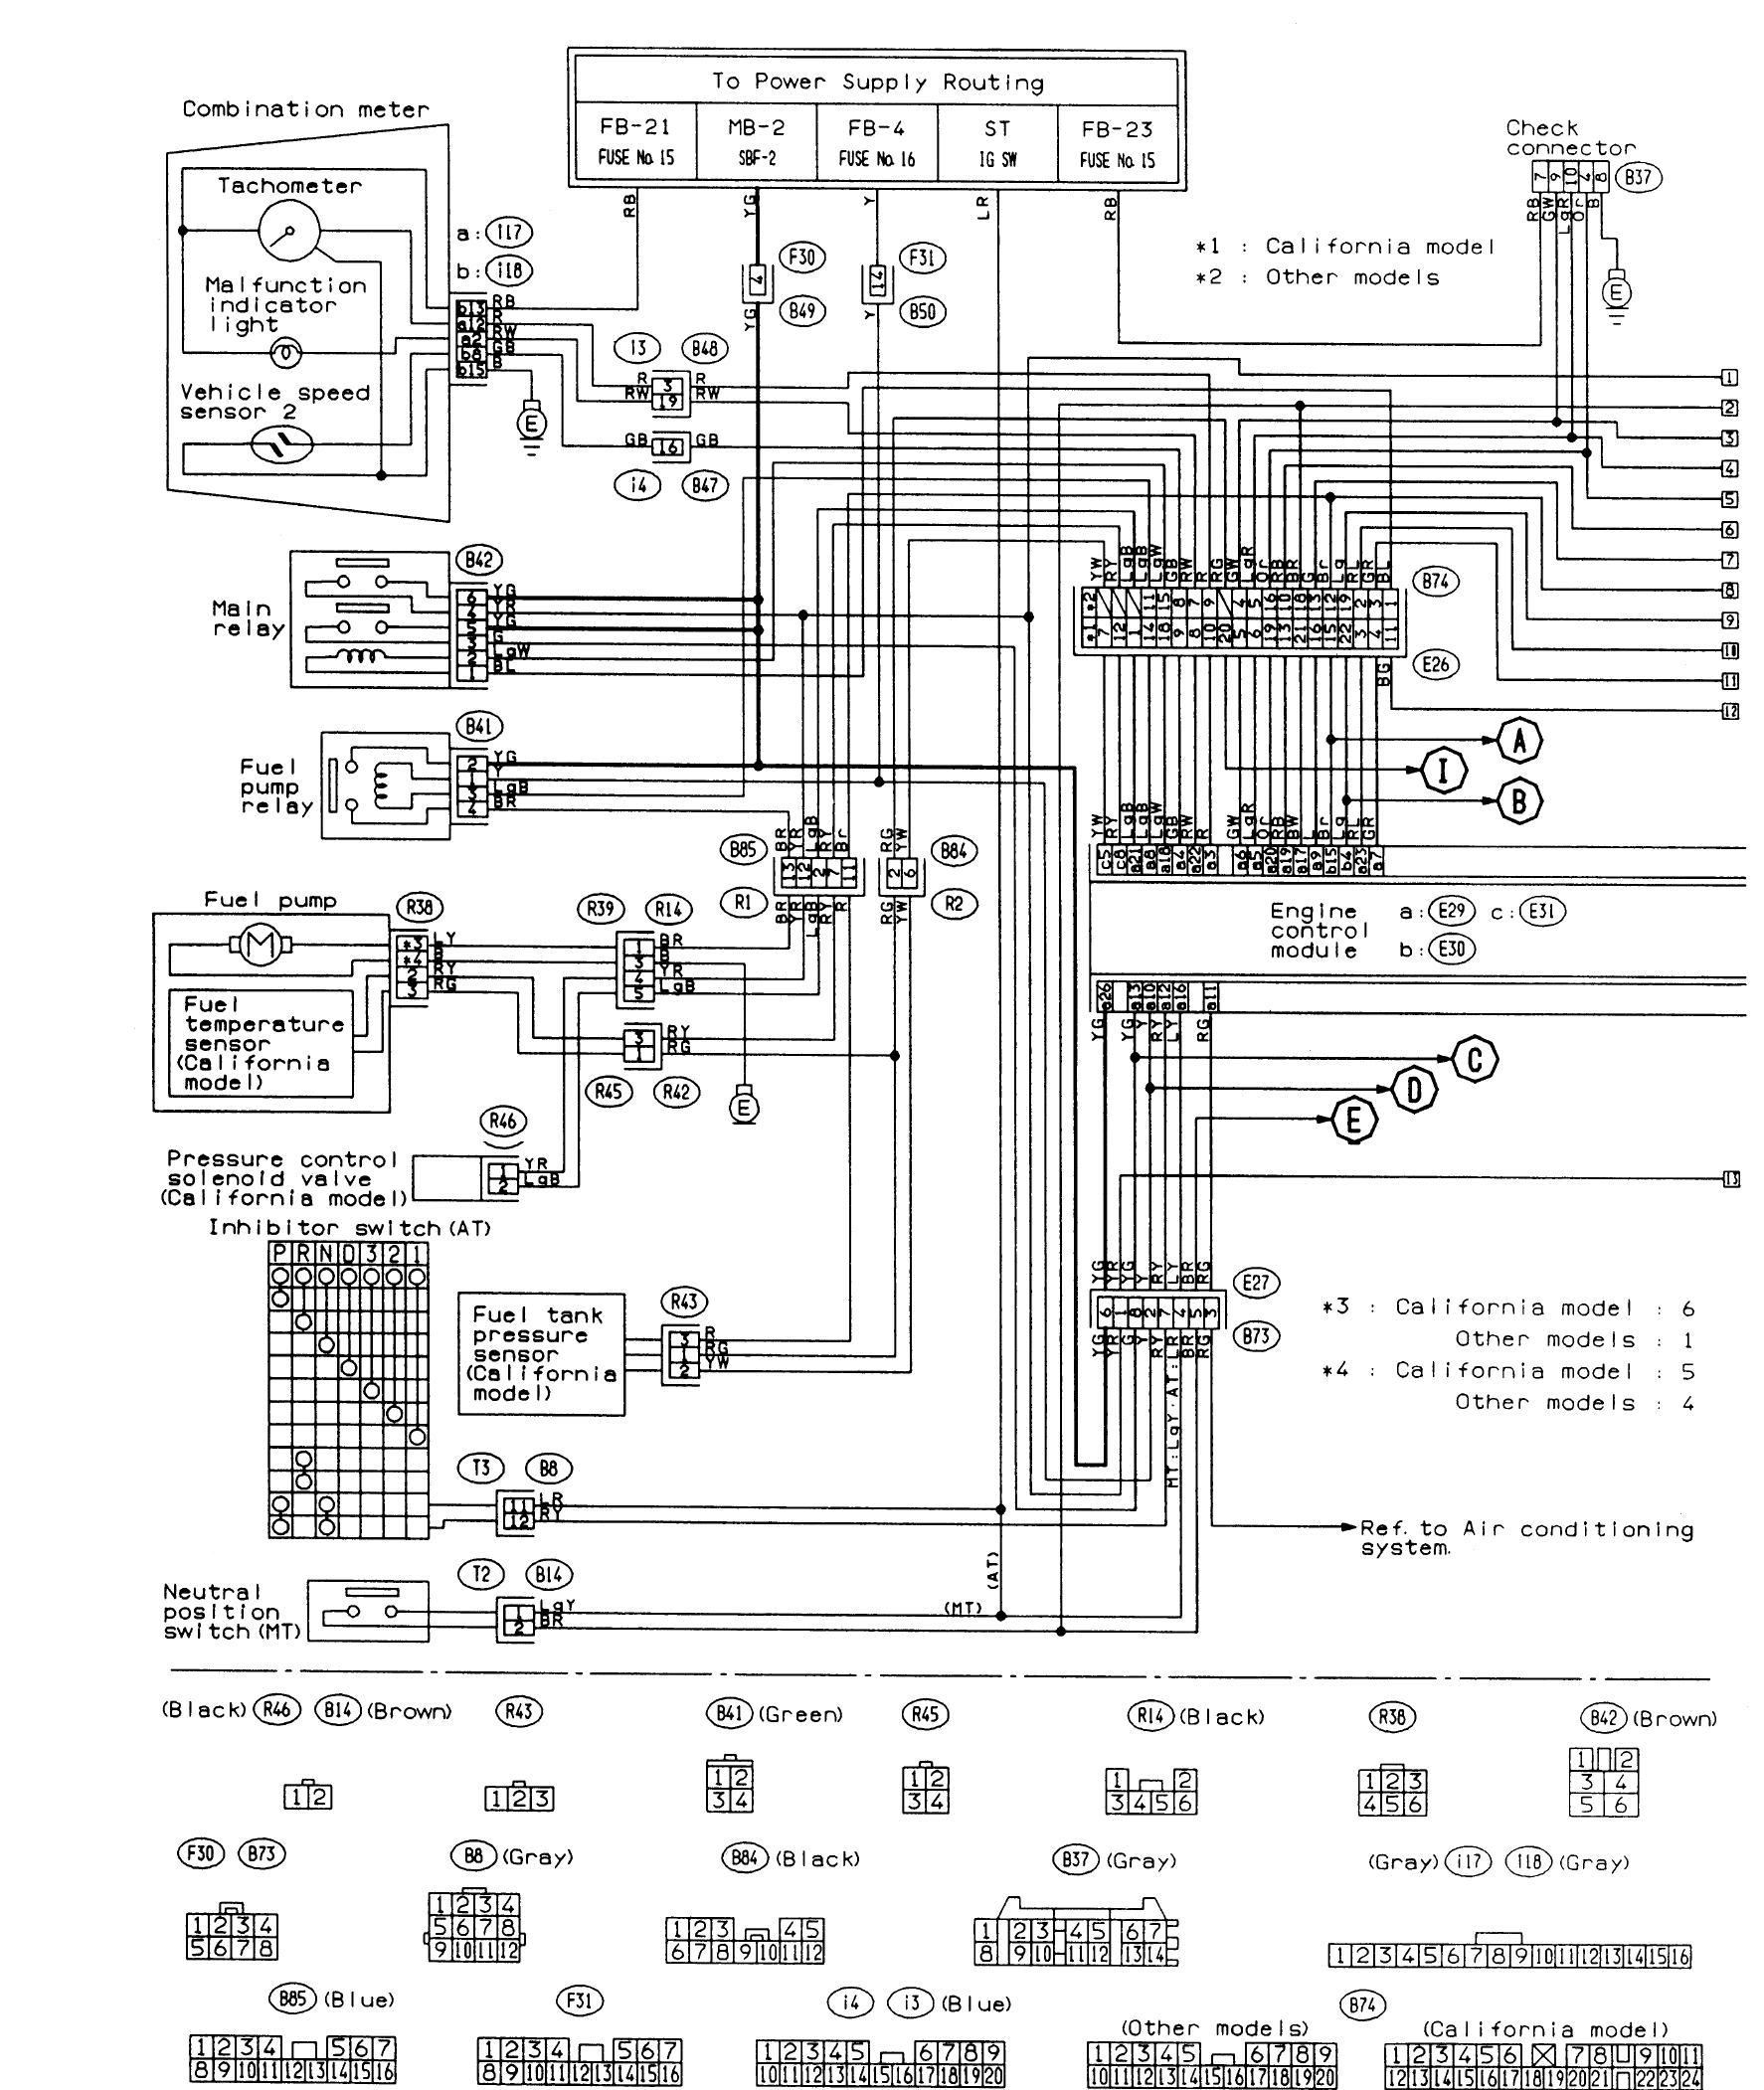 marvair wiring diagram subaru wiring diagrams subaru wiring diagrams